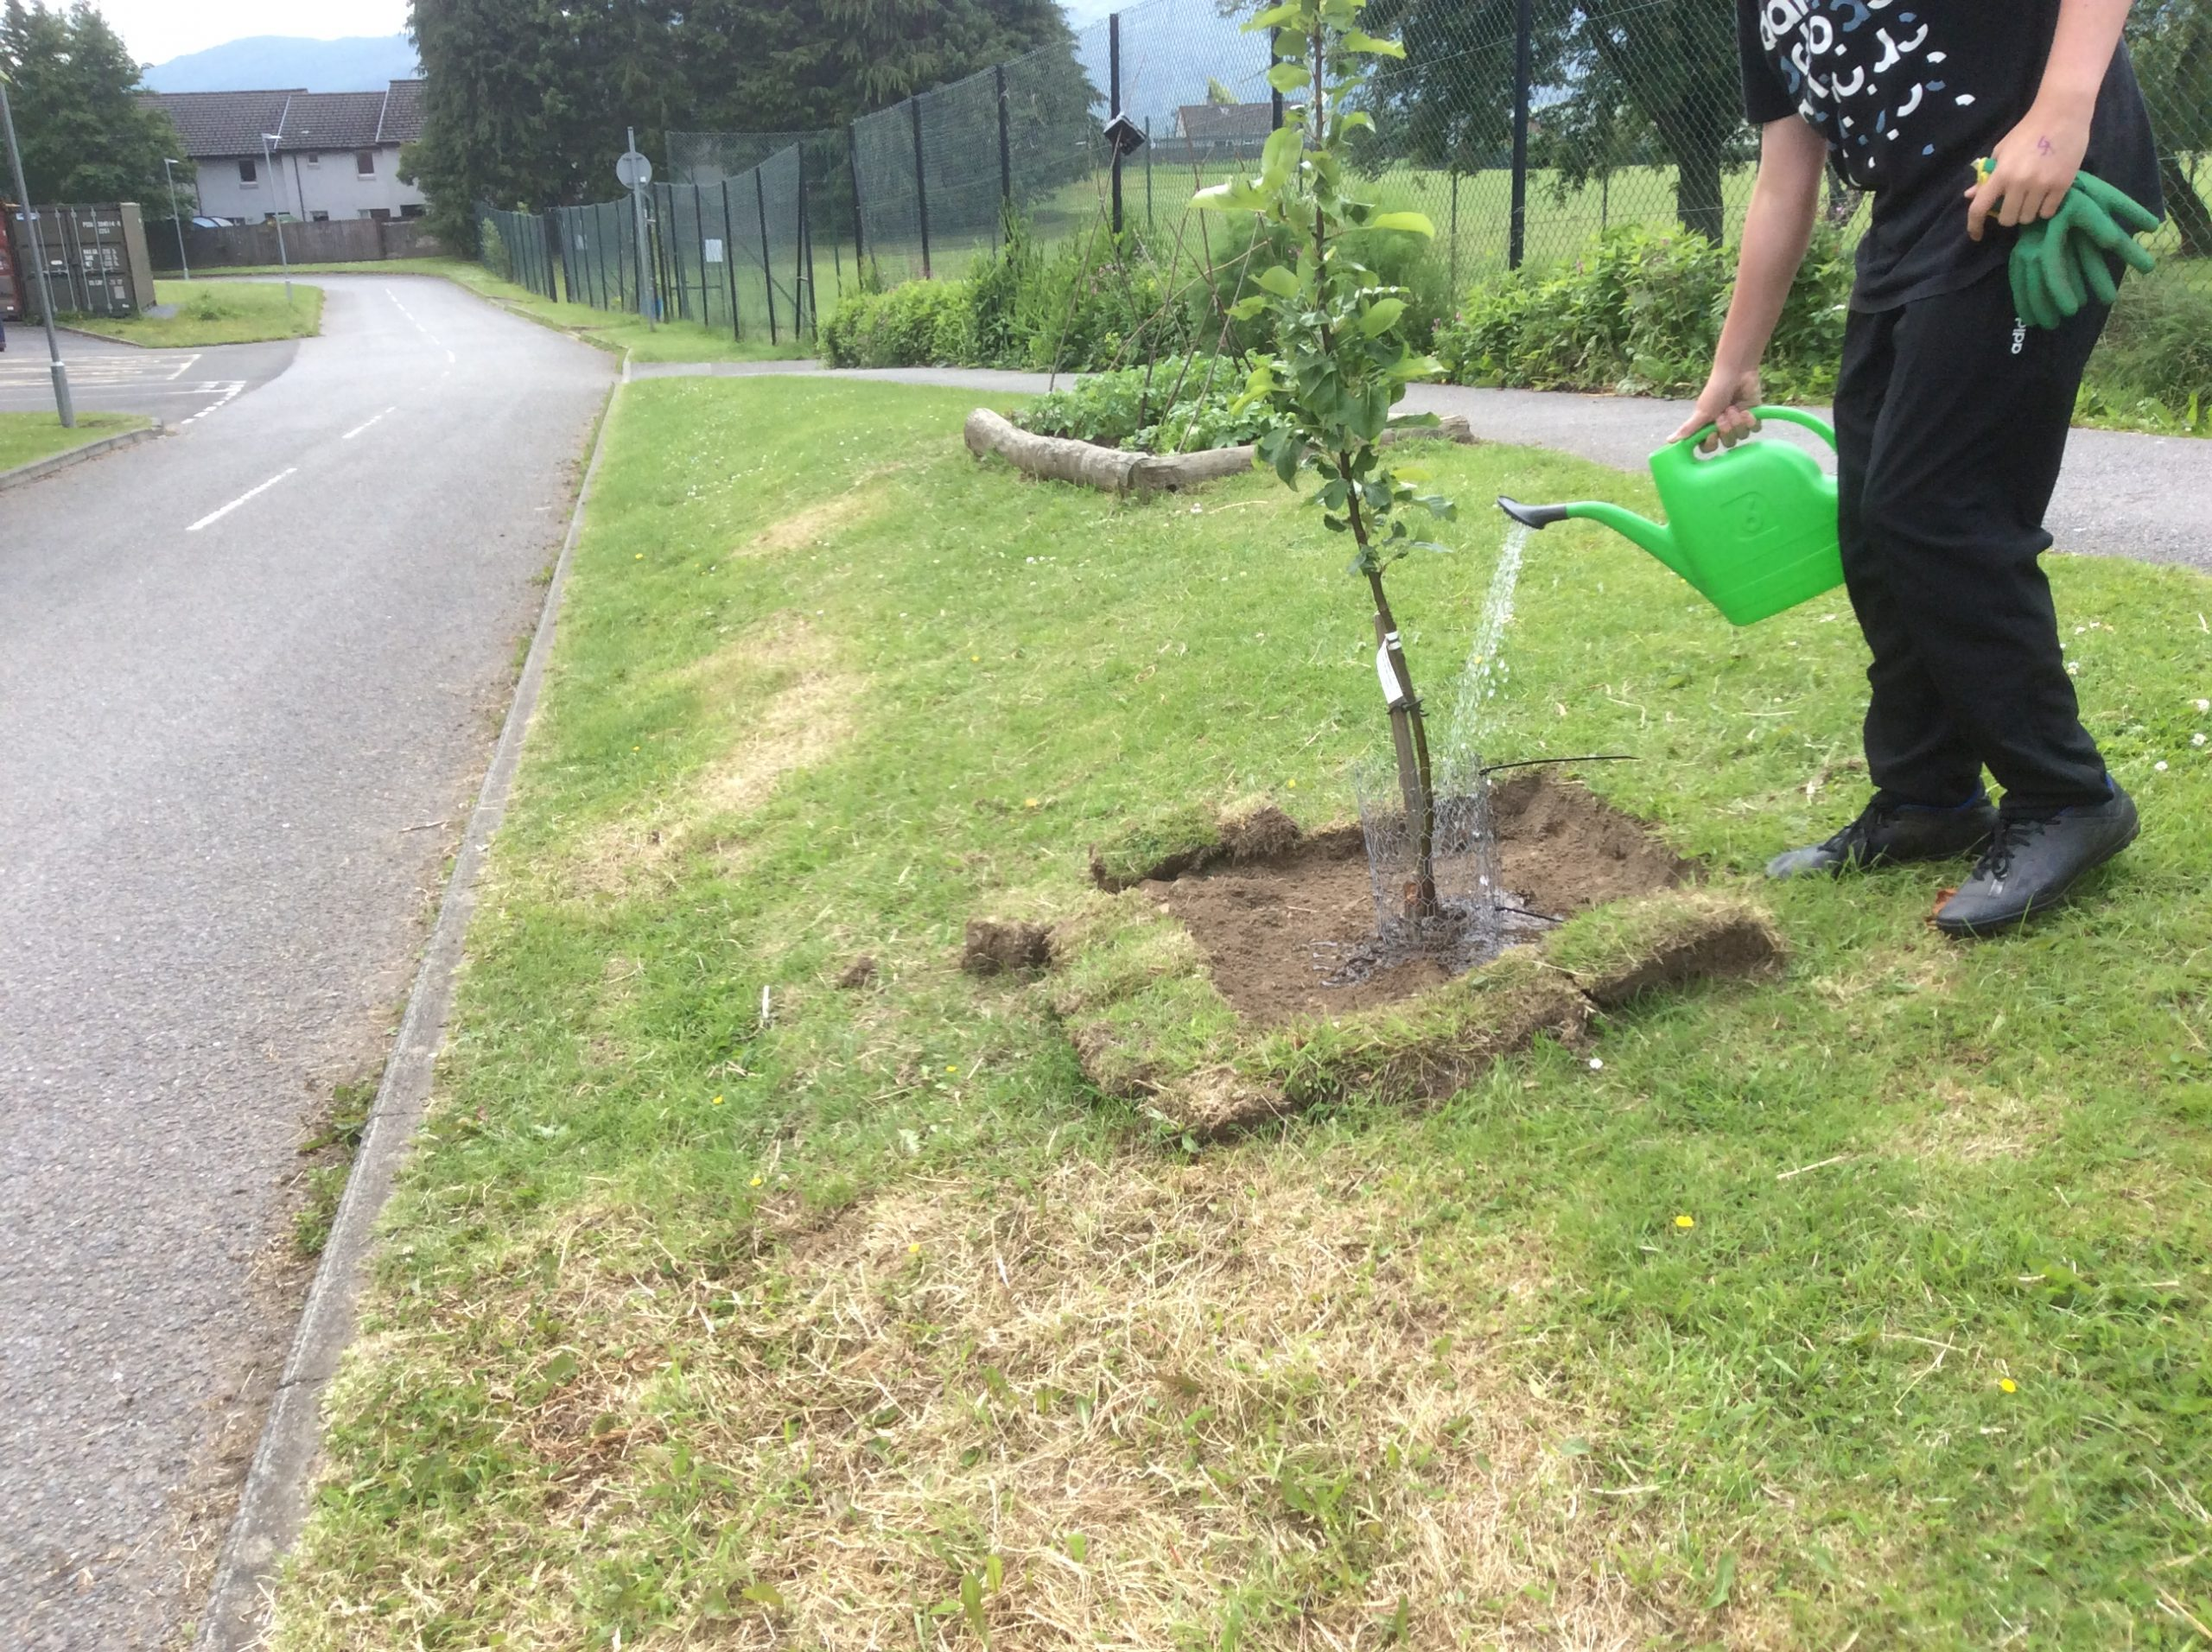 Reinforcing tree guards